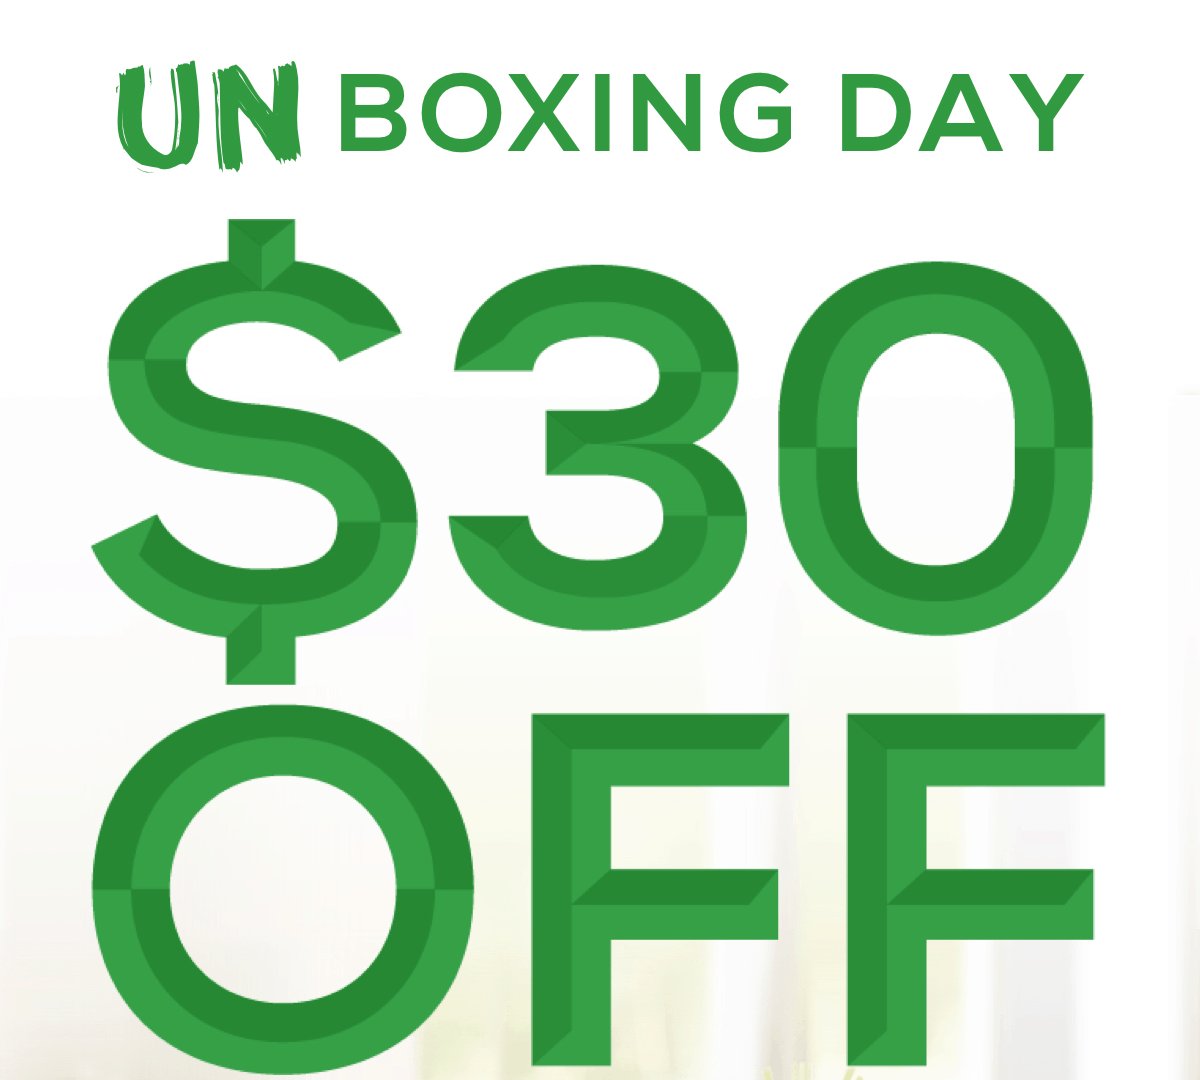 Home Chef UNBoxing Day Sale: Get $30 Off Your First Box!